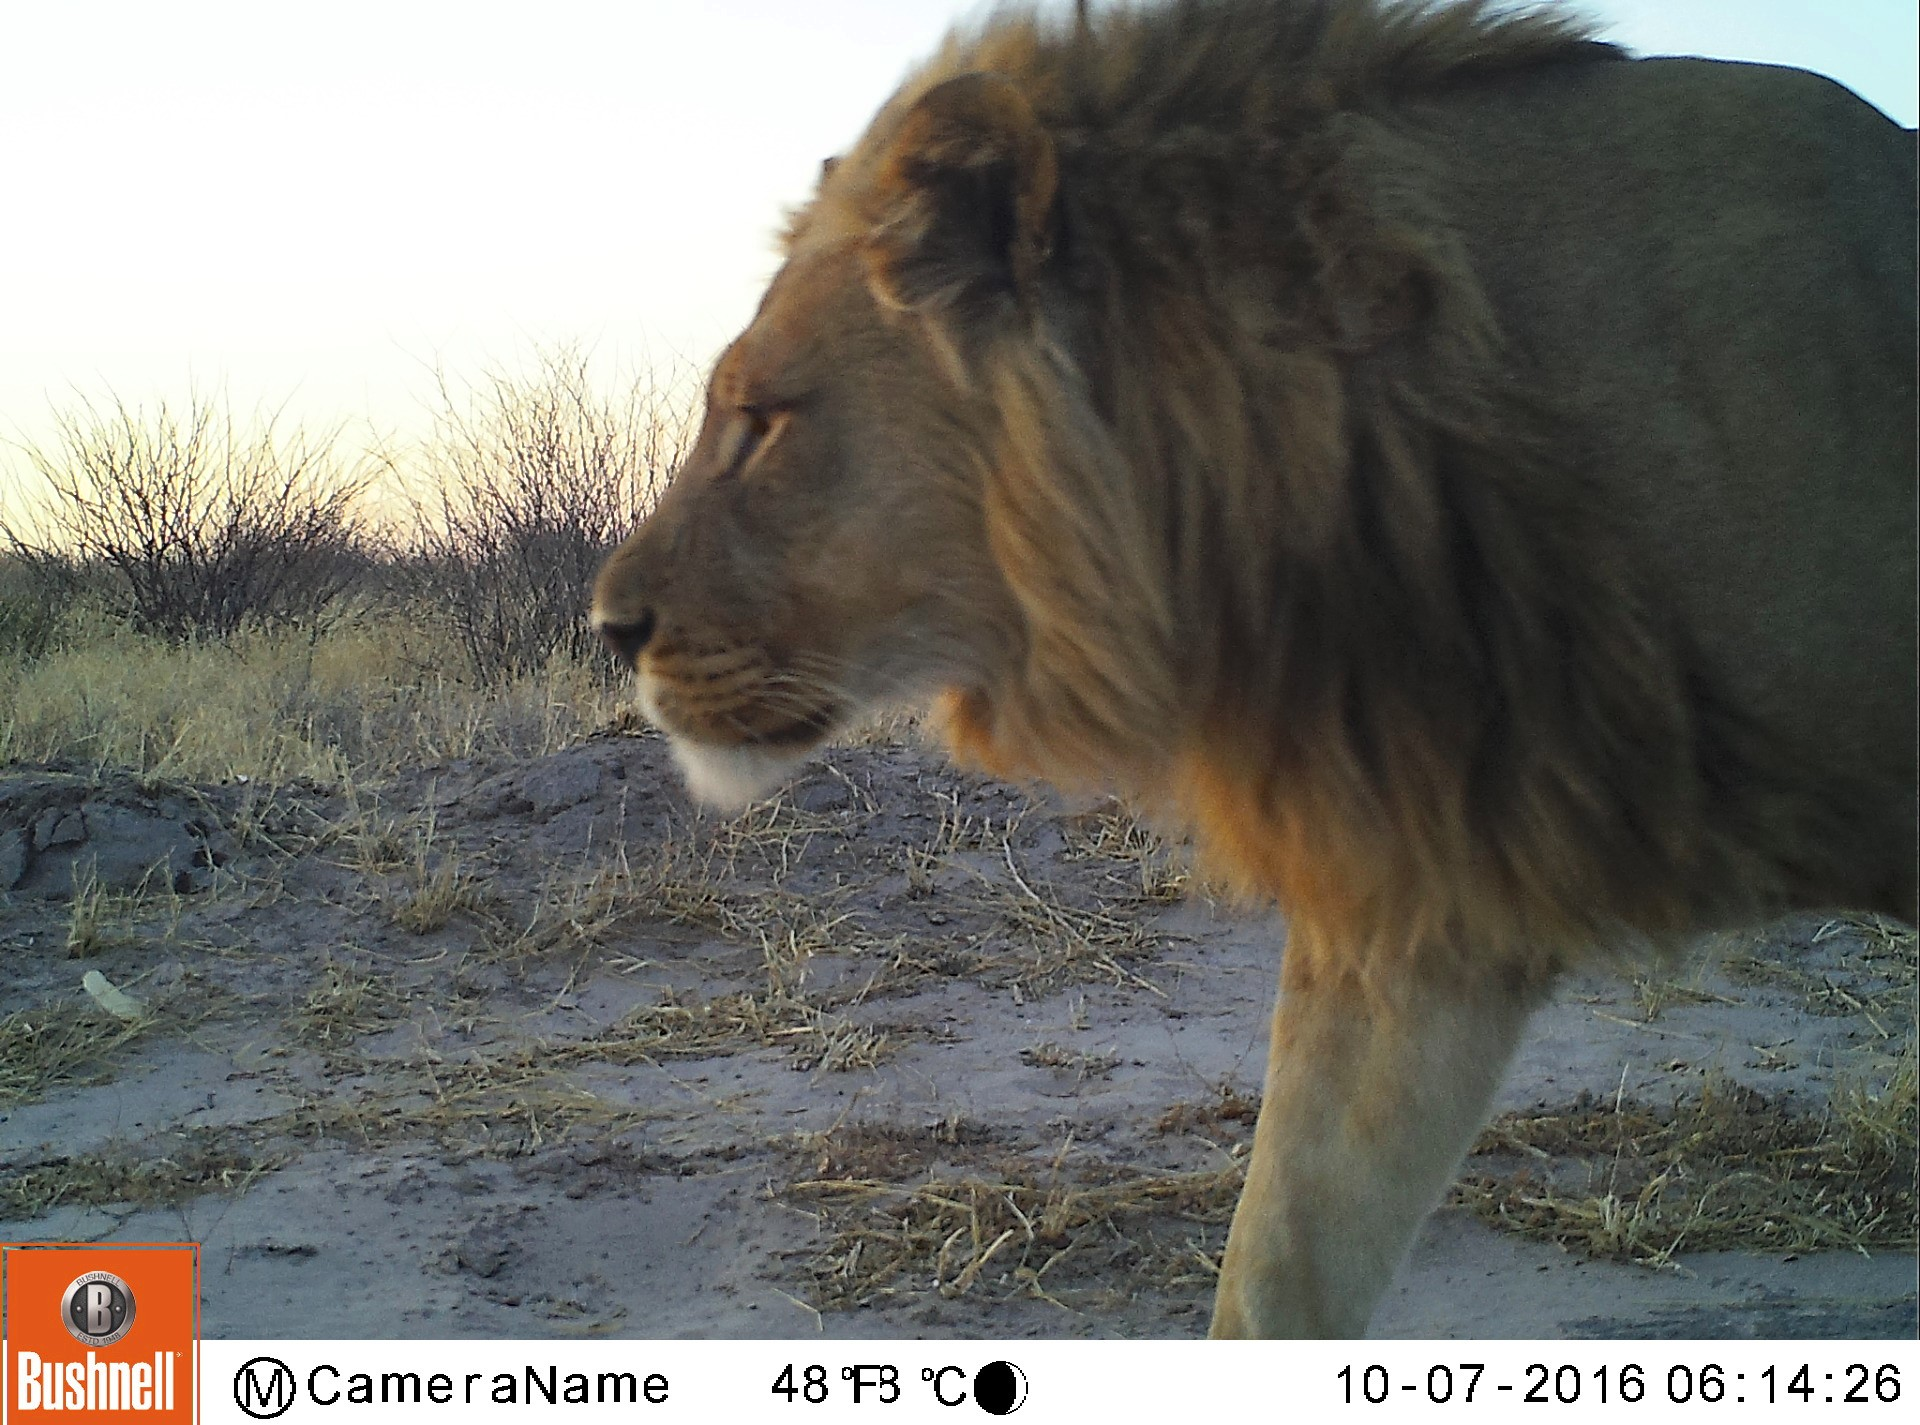 A passing male lion demonstrates that cheetahs are not the only wild cats caught in the camera traps.